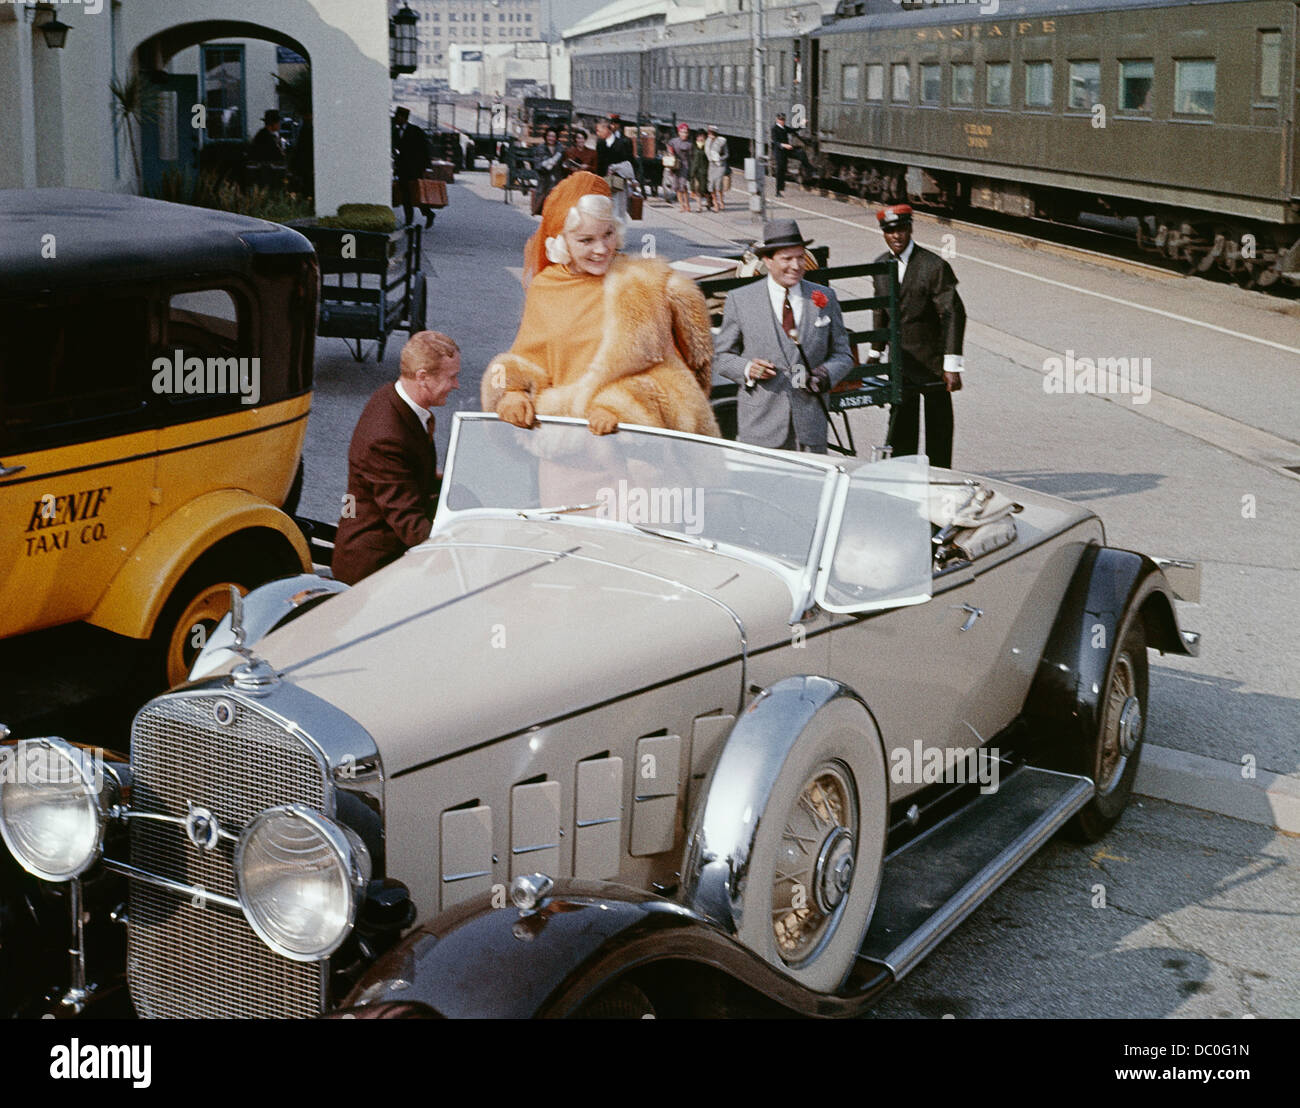 1960s 1965 BIOPIC HARLOW STARRING CARROLL BAKER AS JEAN HARLOW IN 1930s CAR AT TRAIN STATION - Stock Image